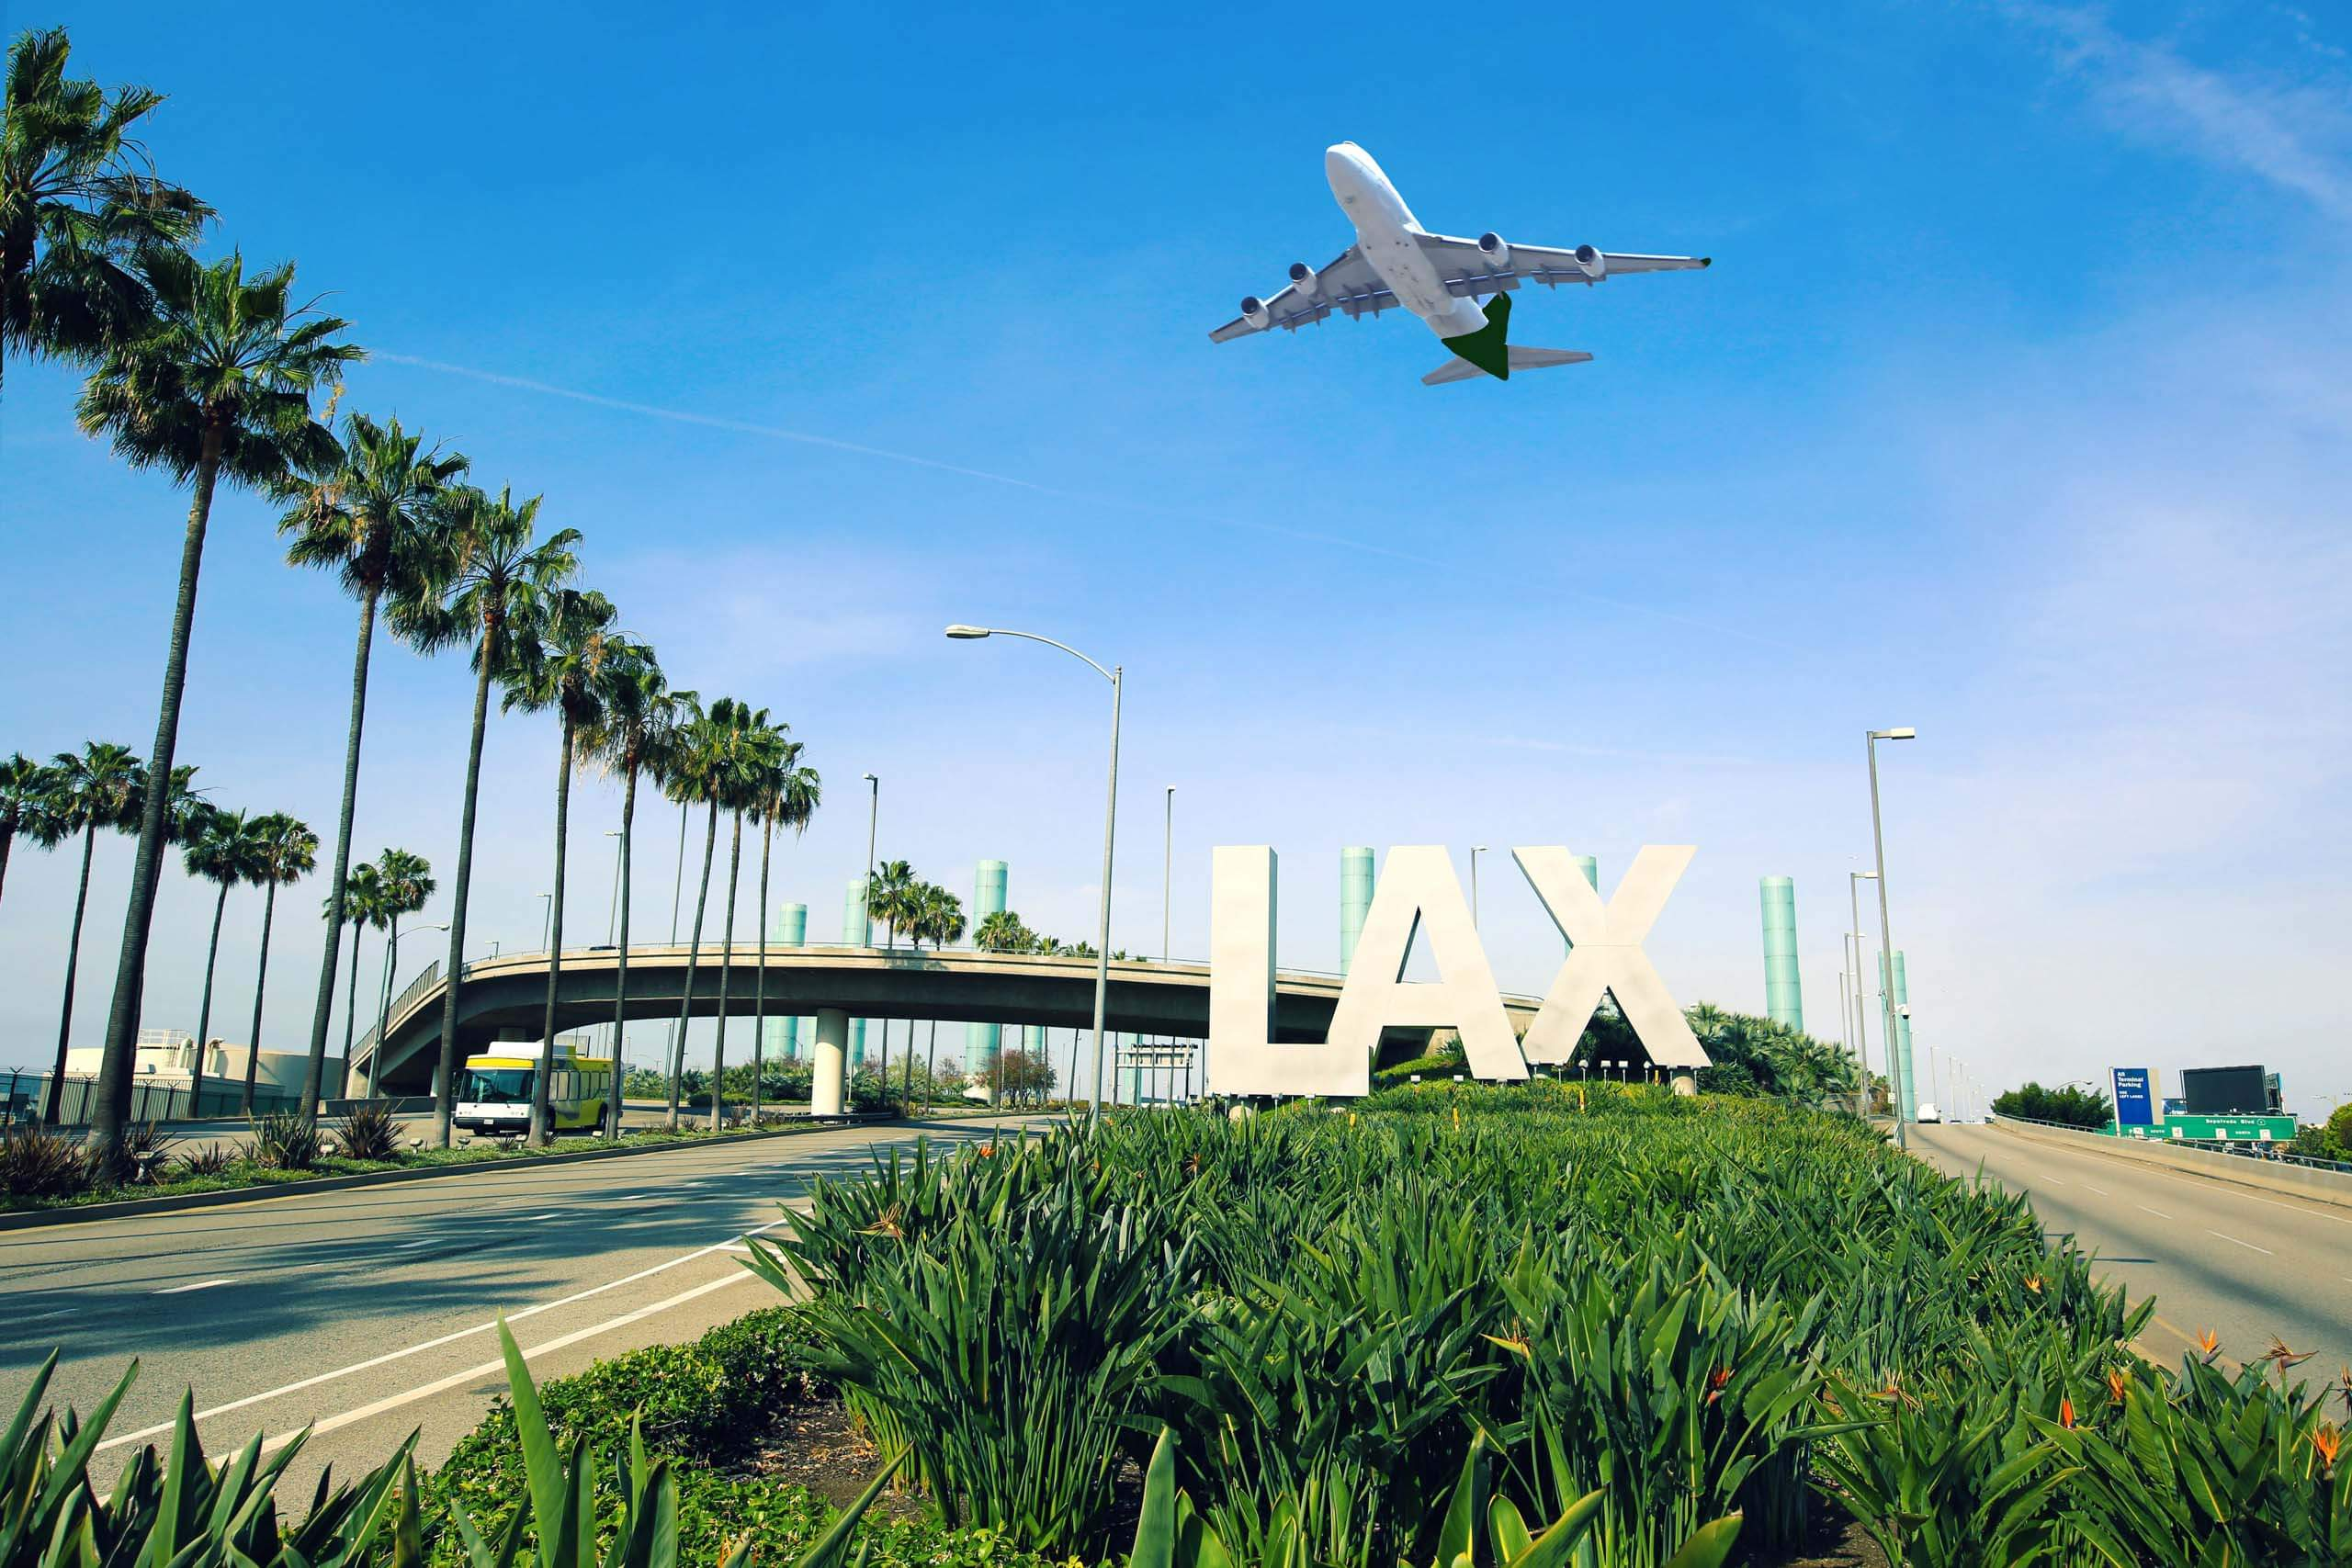 Los Angeles Airport sign full highway with airplane flying overhead.